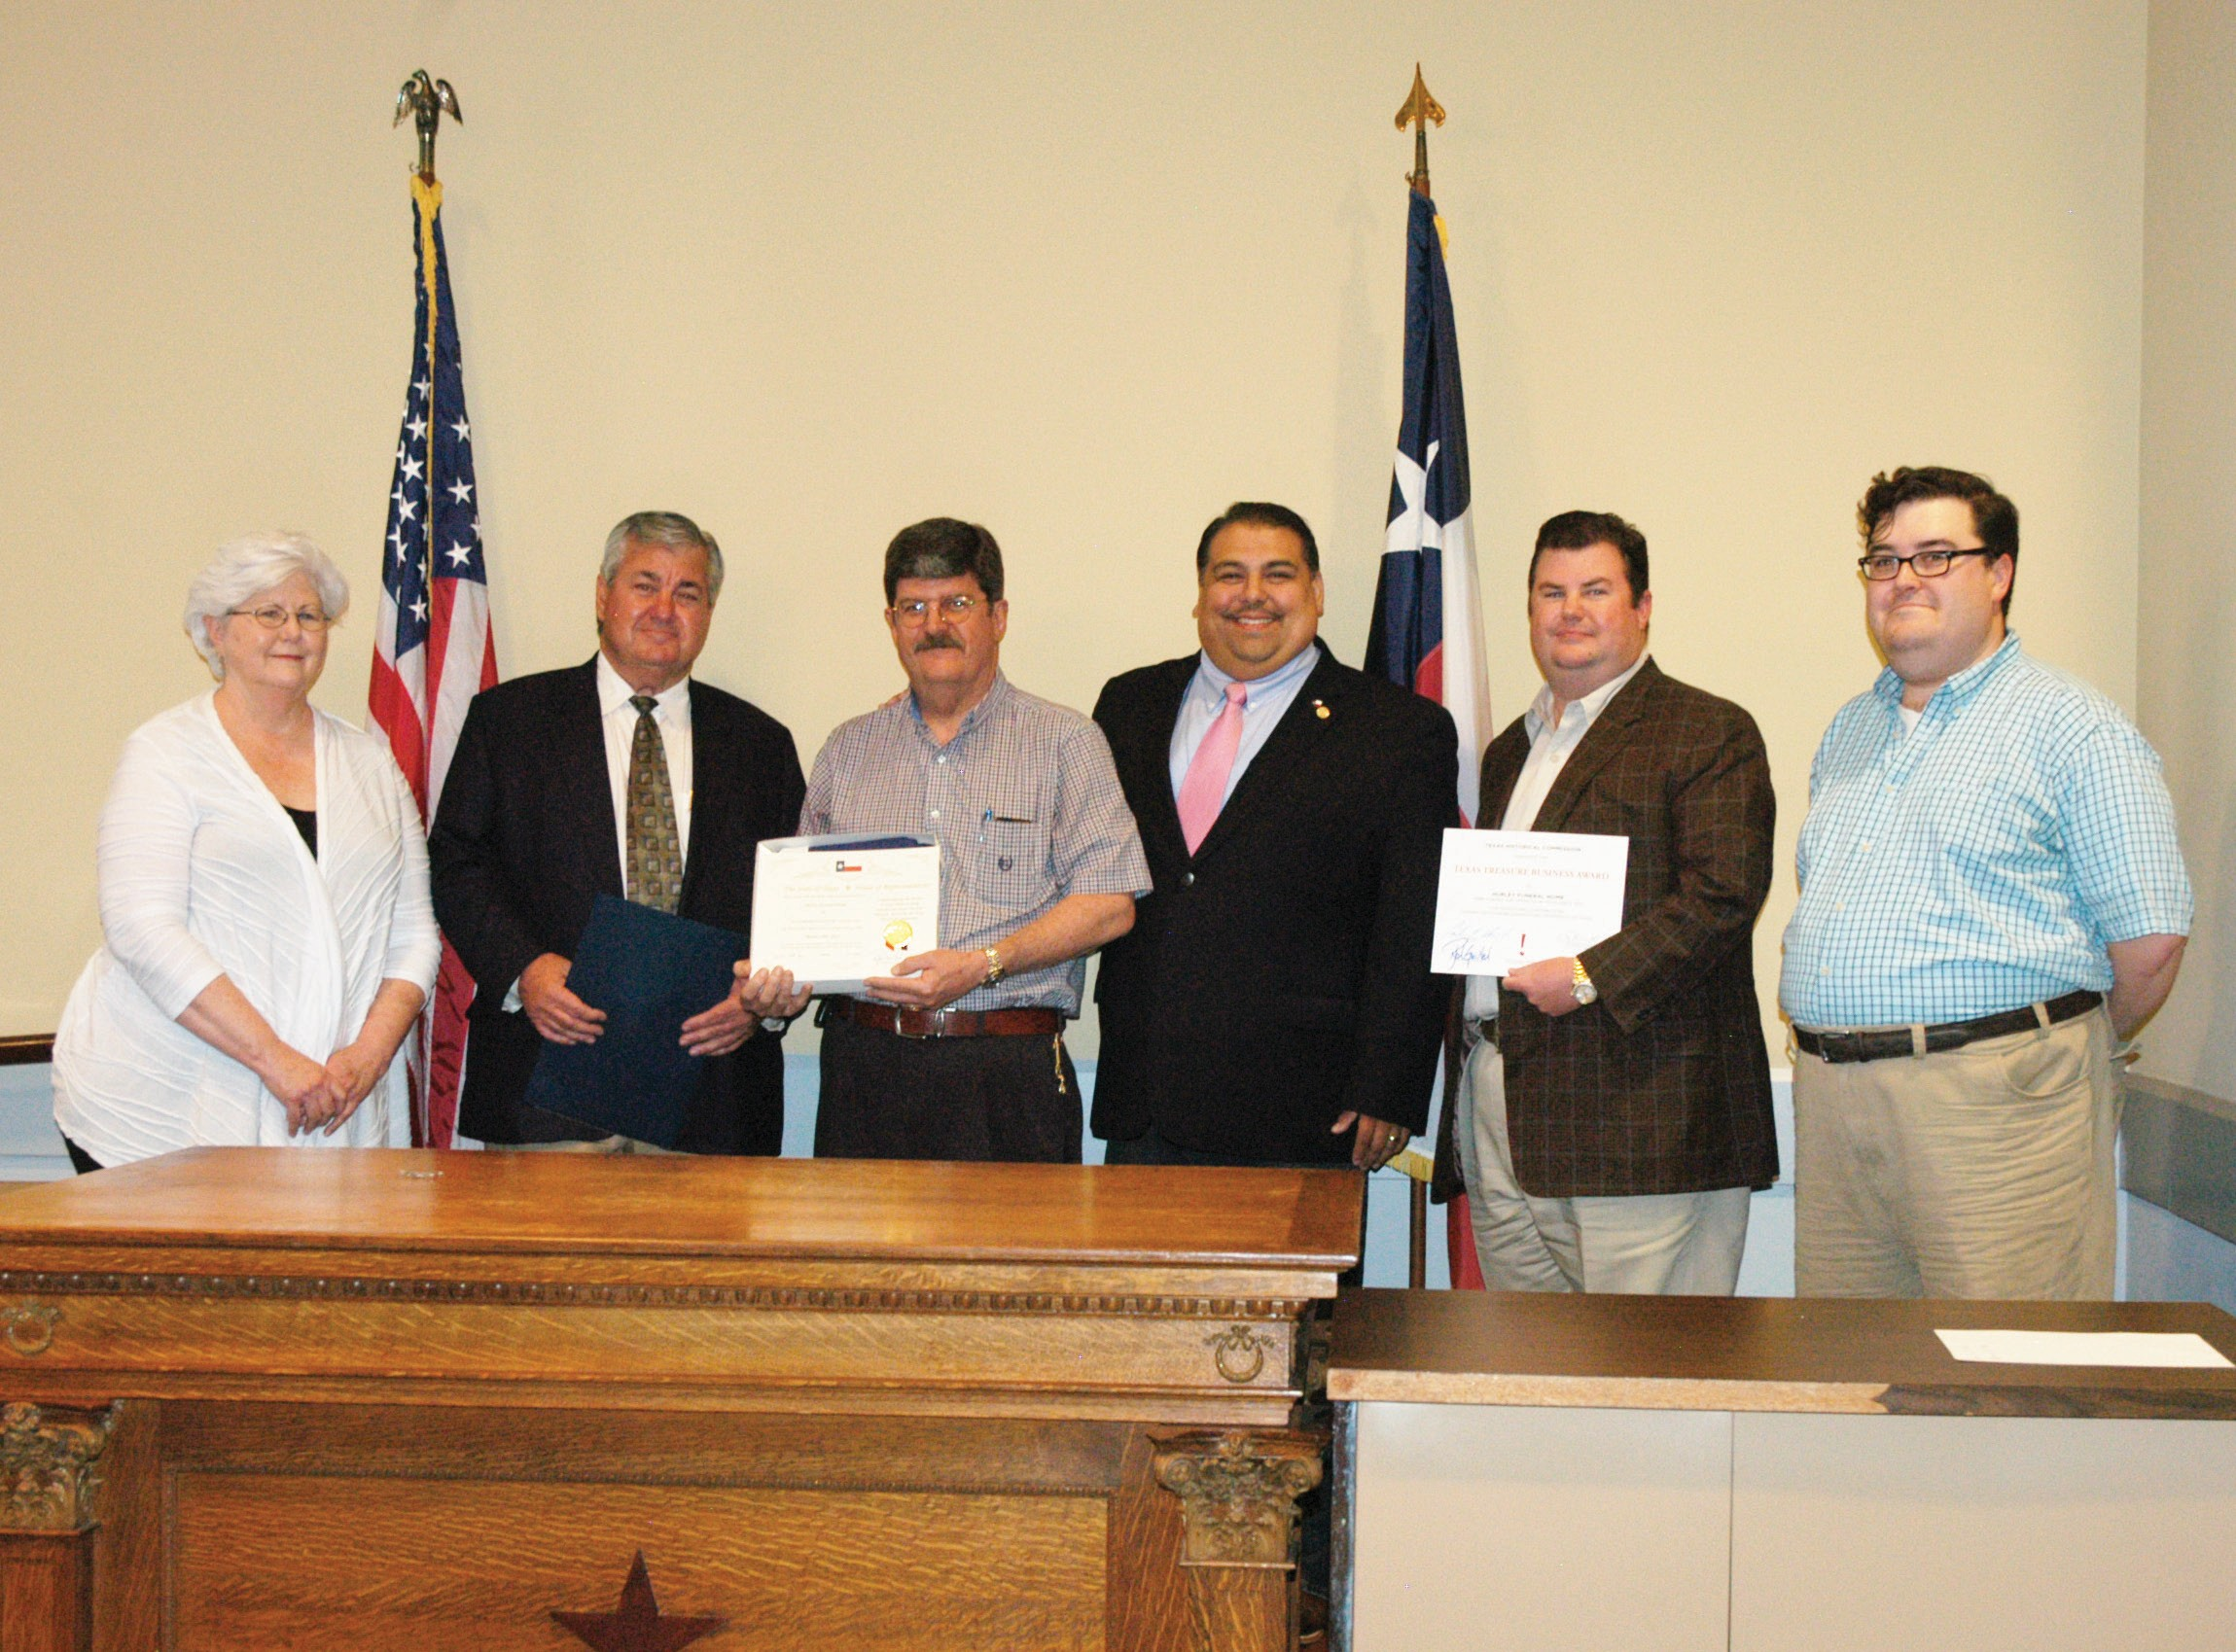 Hurley Funeral Home was awarded a Texas Treasure Business Award on Thursday, March 19, at the courthouse. Left to right are: Barbara Westbrook, Atascosa County Historical Commission Chairman; Pat Hurley, Ross Hurley, Texas State Representative Ryan Guillen, Patrick Hurley Jr, and Evan Hurley. The family received a certificate and a flag that was flown over the Capitol earlier that day.